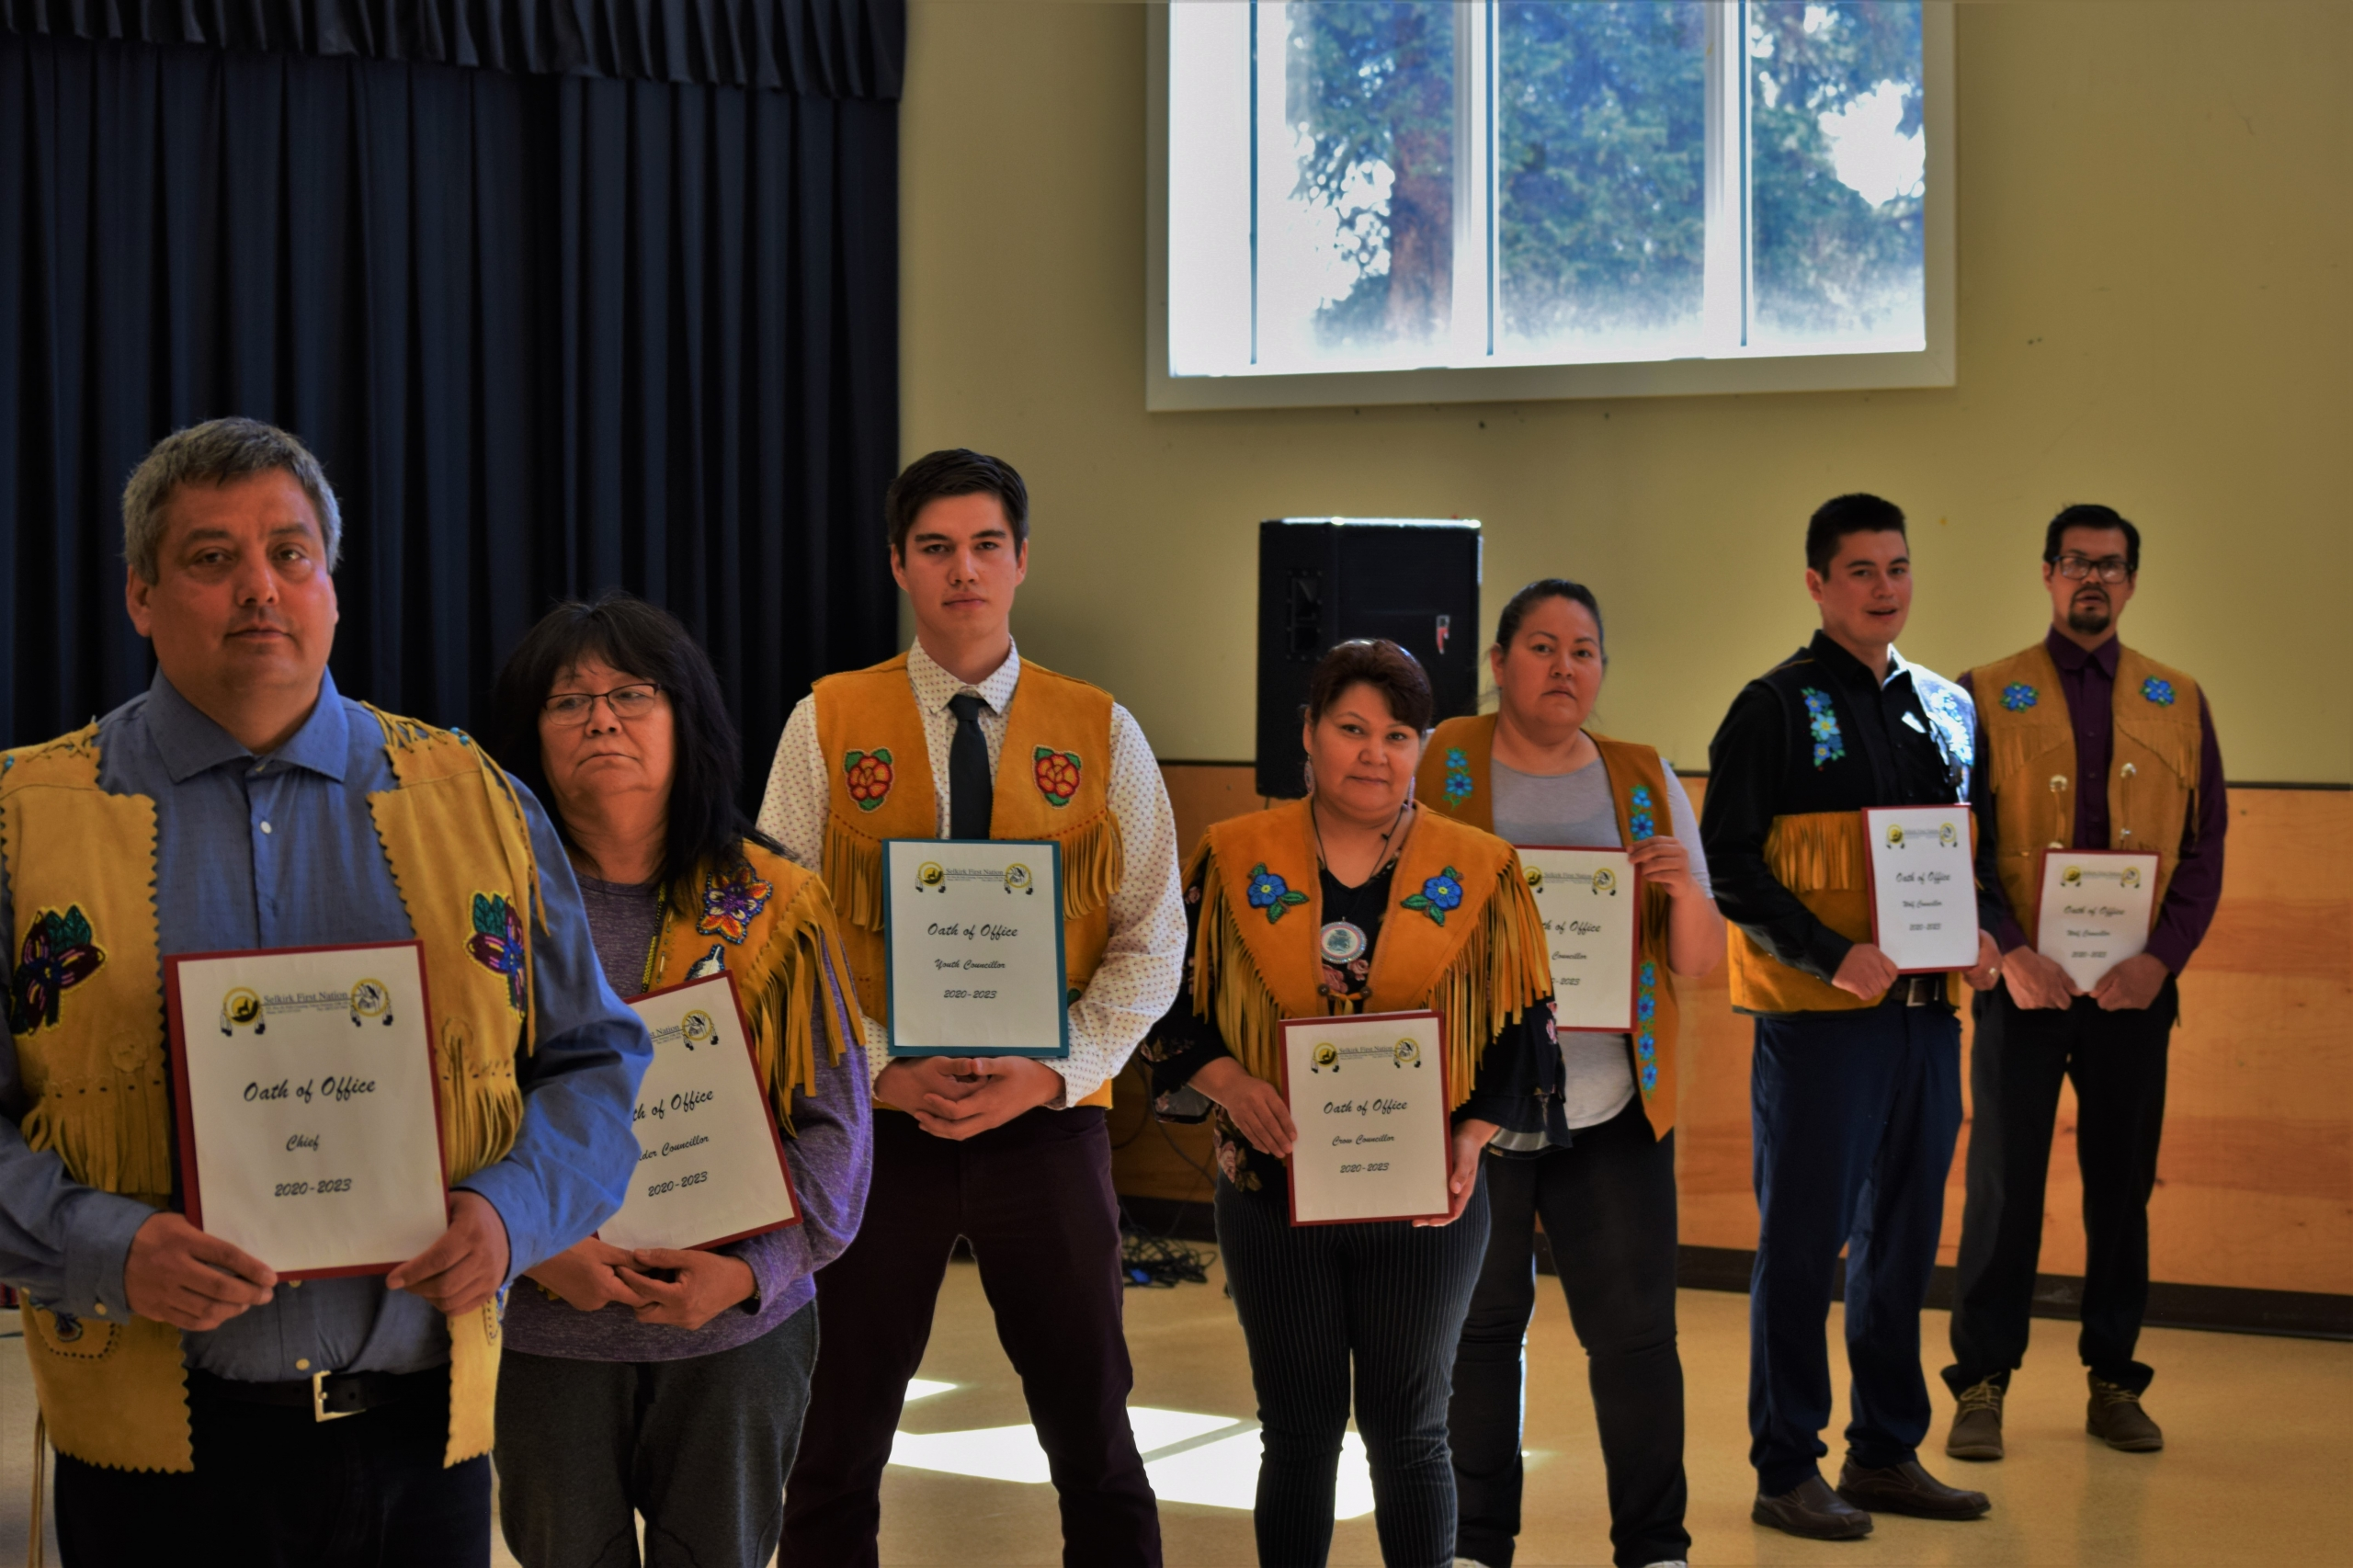 From Left to right: Chief Sharon Nelson, Wolf Councillor, George McGinty, Youth Councillor, Morris Morrison, Wolf Councillor, Dean Gill, Elder Councillor, Milly Johnson, Crow Councillor, Nesta Hager, missing Crow Councillor, Teddy Charlie